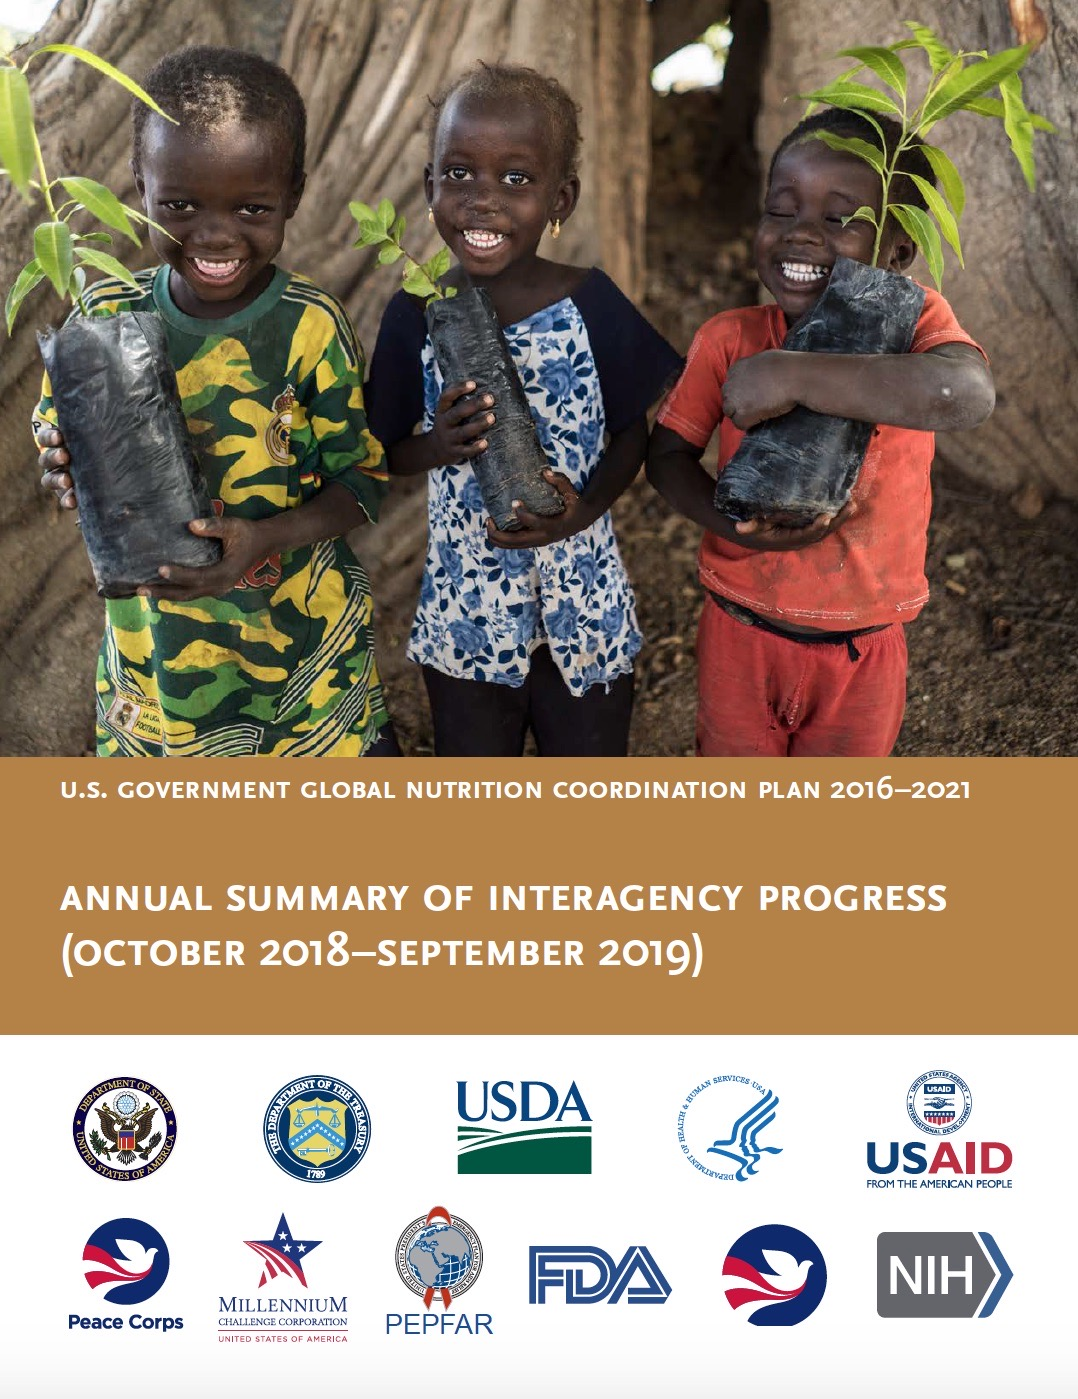 U.S. Government Global Nutrition Coordination Plan - Year 3 Report